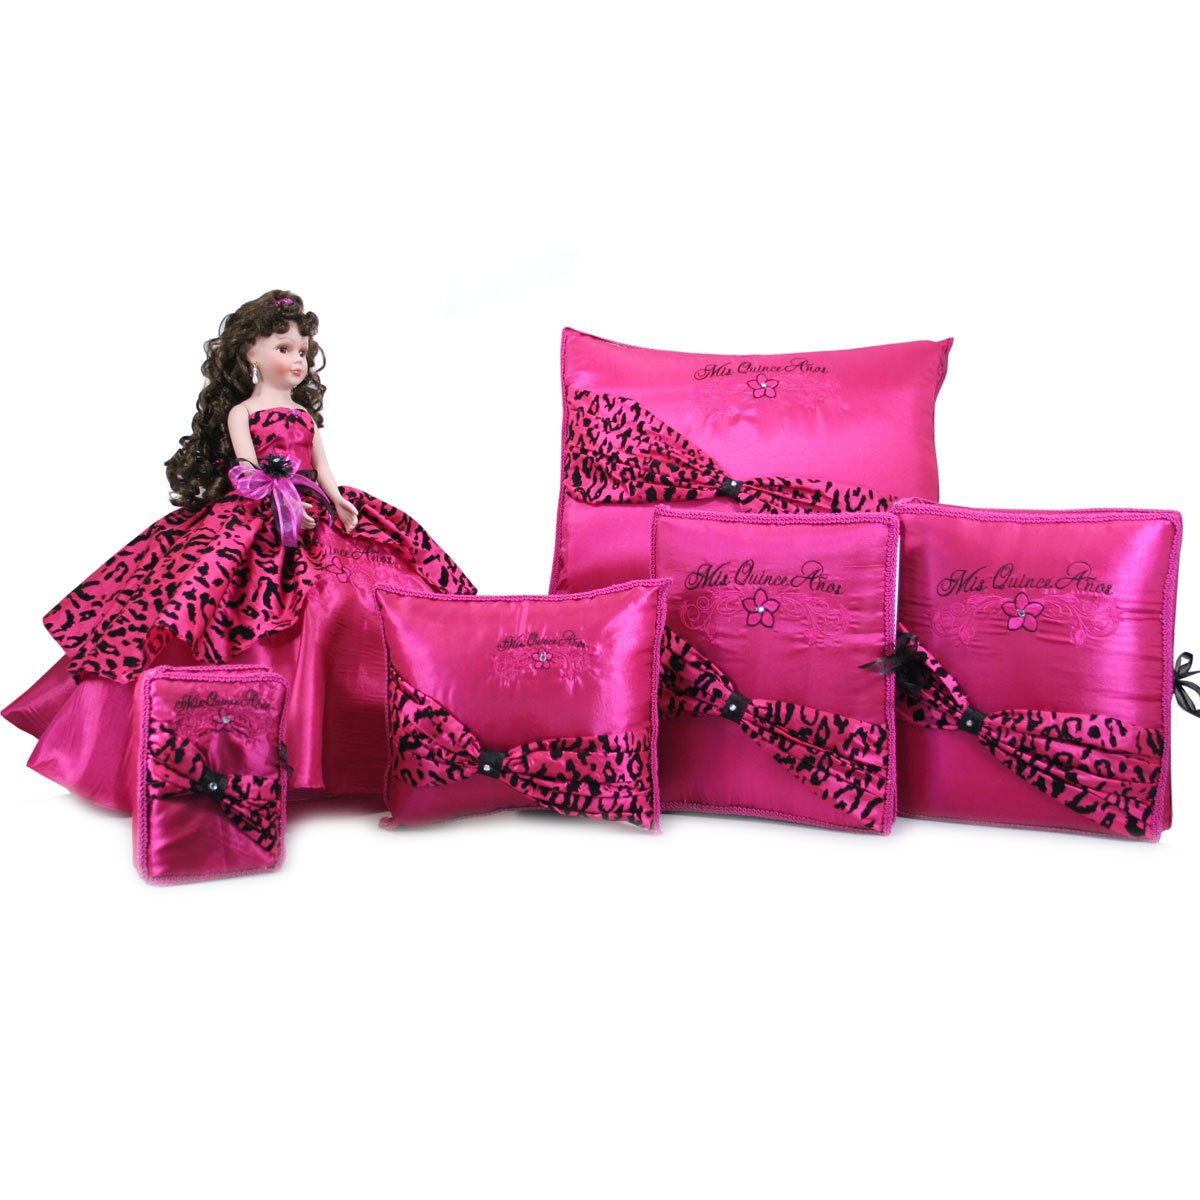 Mis Quince Quinceanera Doll Set Party Favor Q1012 (Basic Set + Spanish Bible) by Quinceanera